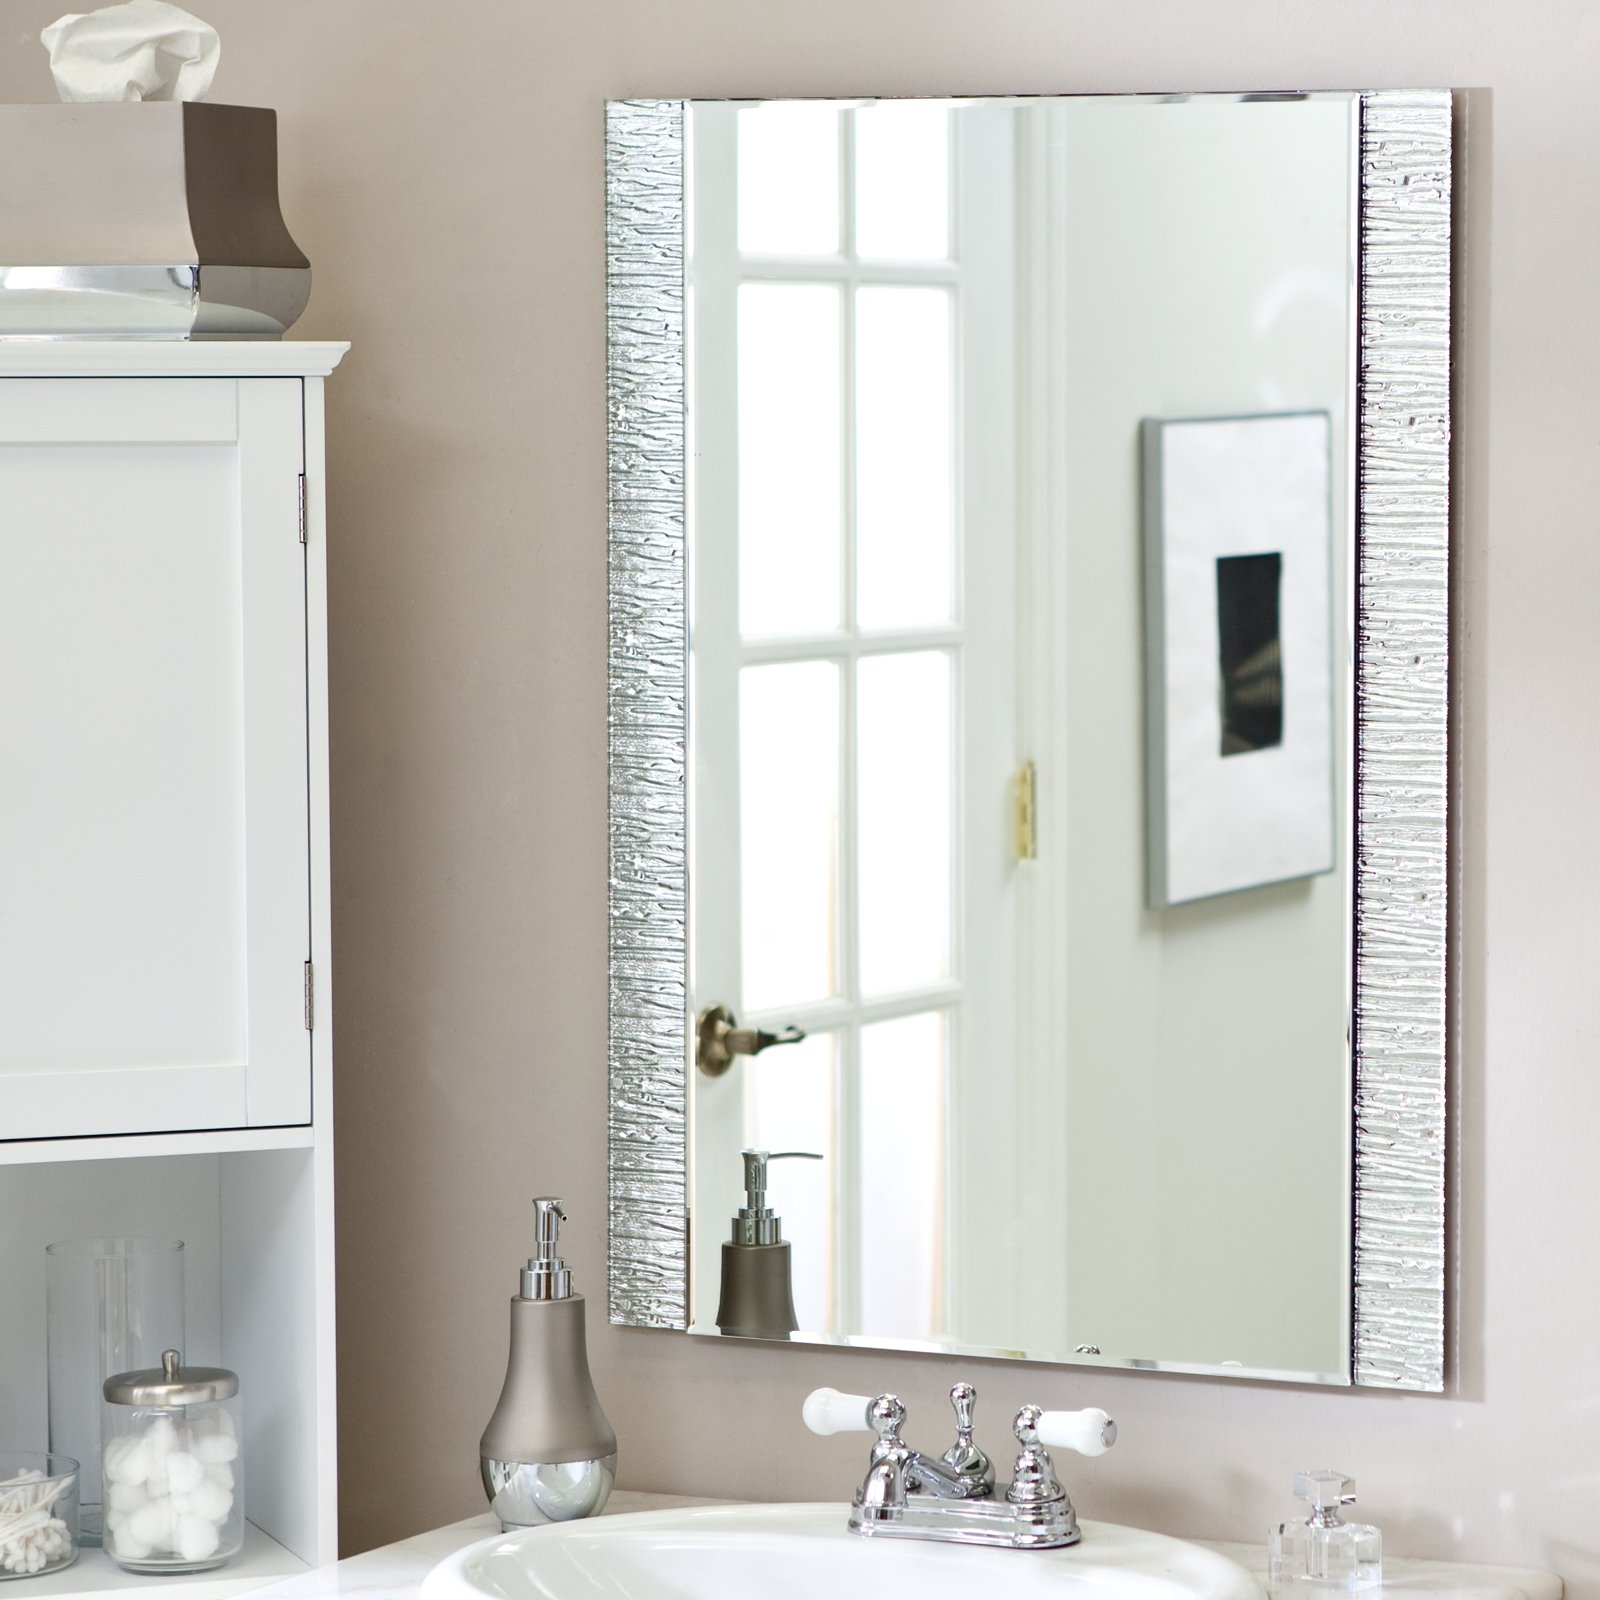 Bathrooms With Frameless Mirrorslarge bathroom mirror frameless 51 outstanding for mirrors in